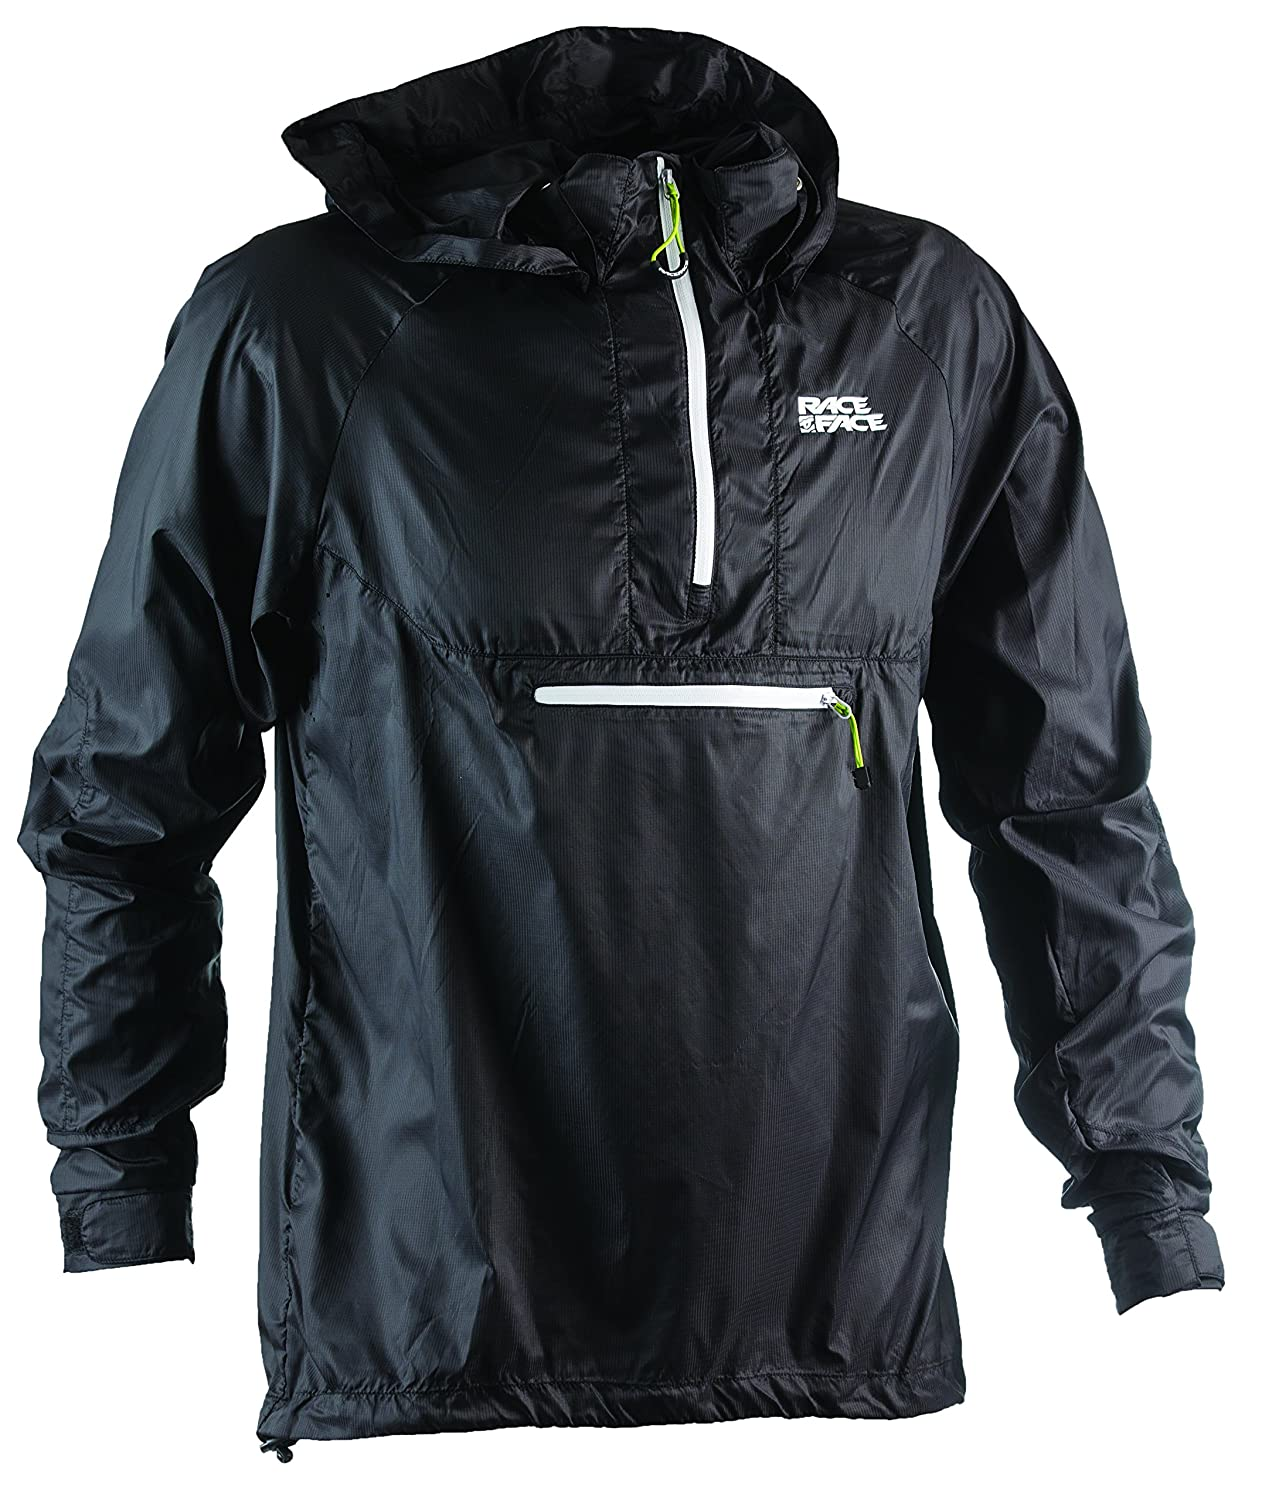 Racing Jackets Race Face Nano Packable Jacket